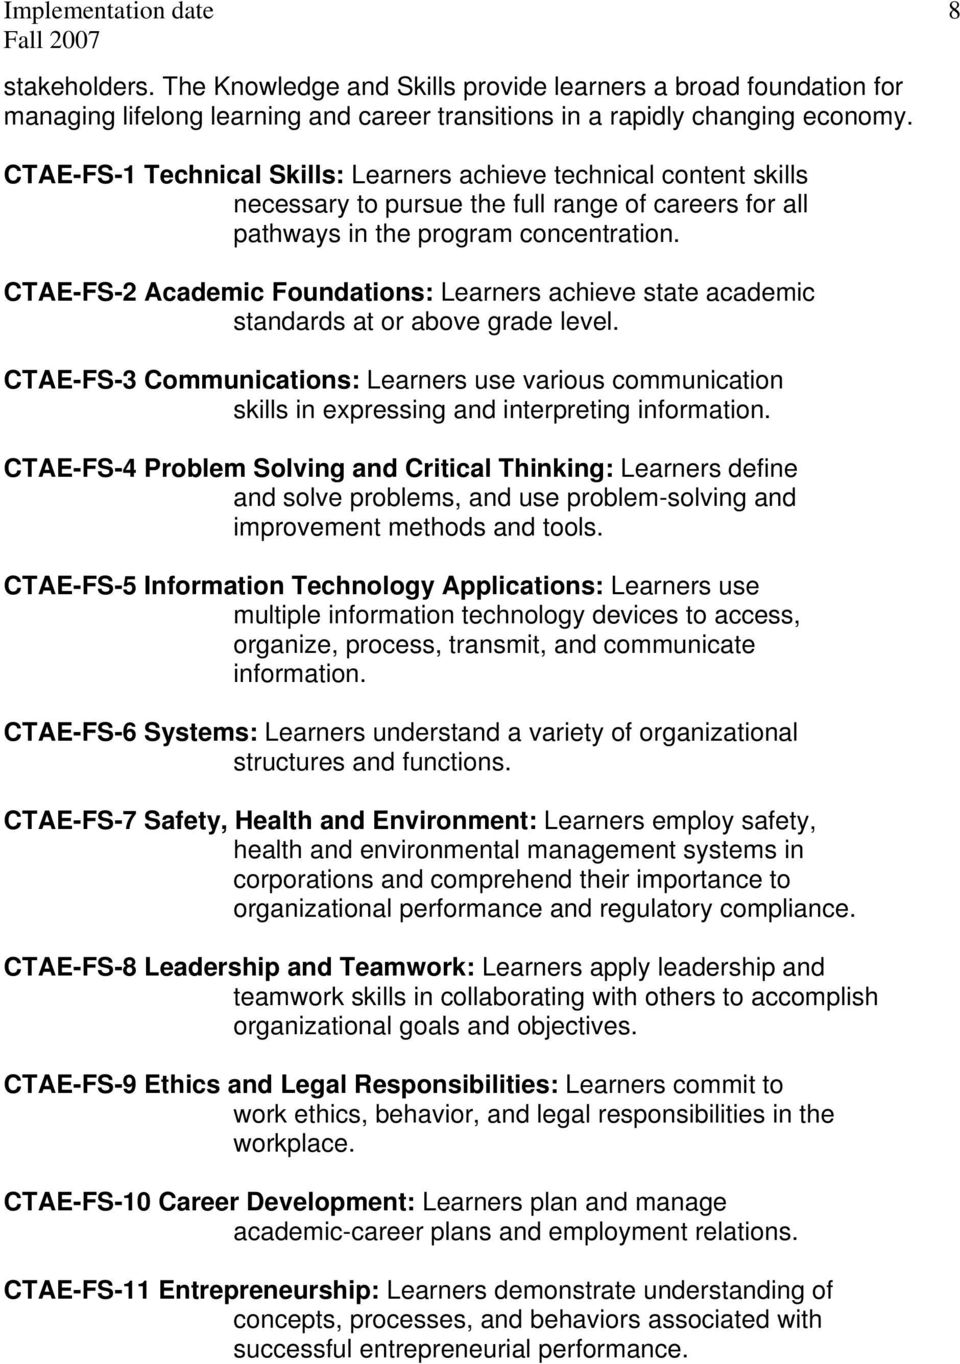 CTAE-FS-2 Academic Foundations: Learners achieve state academic standards at or above grade level.